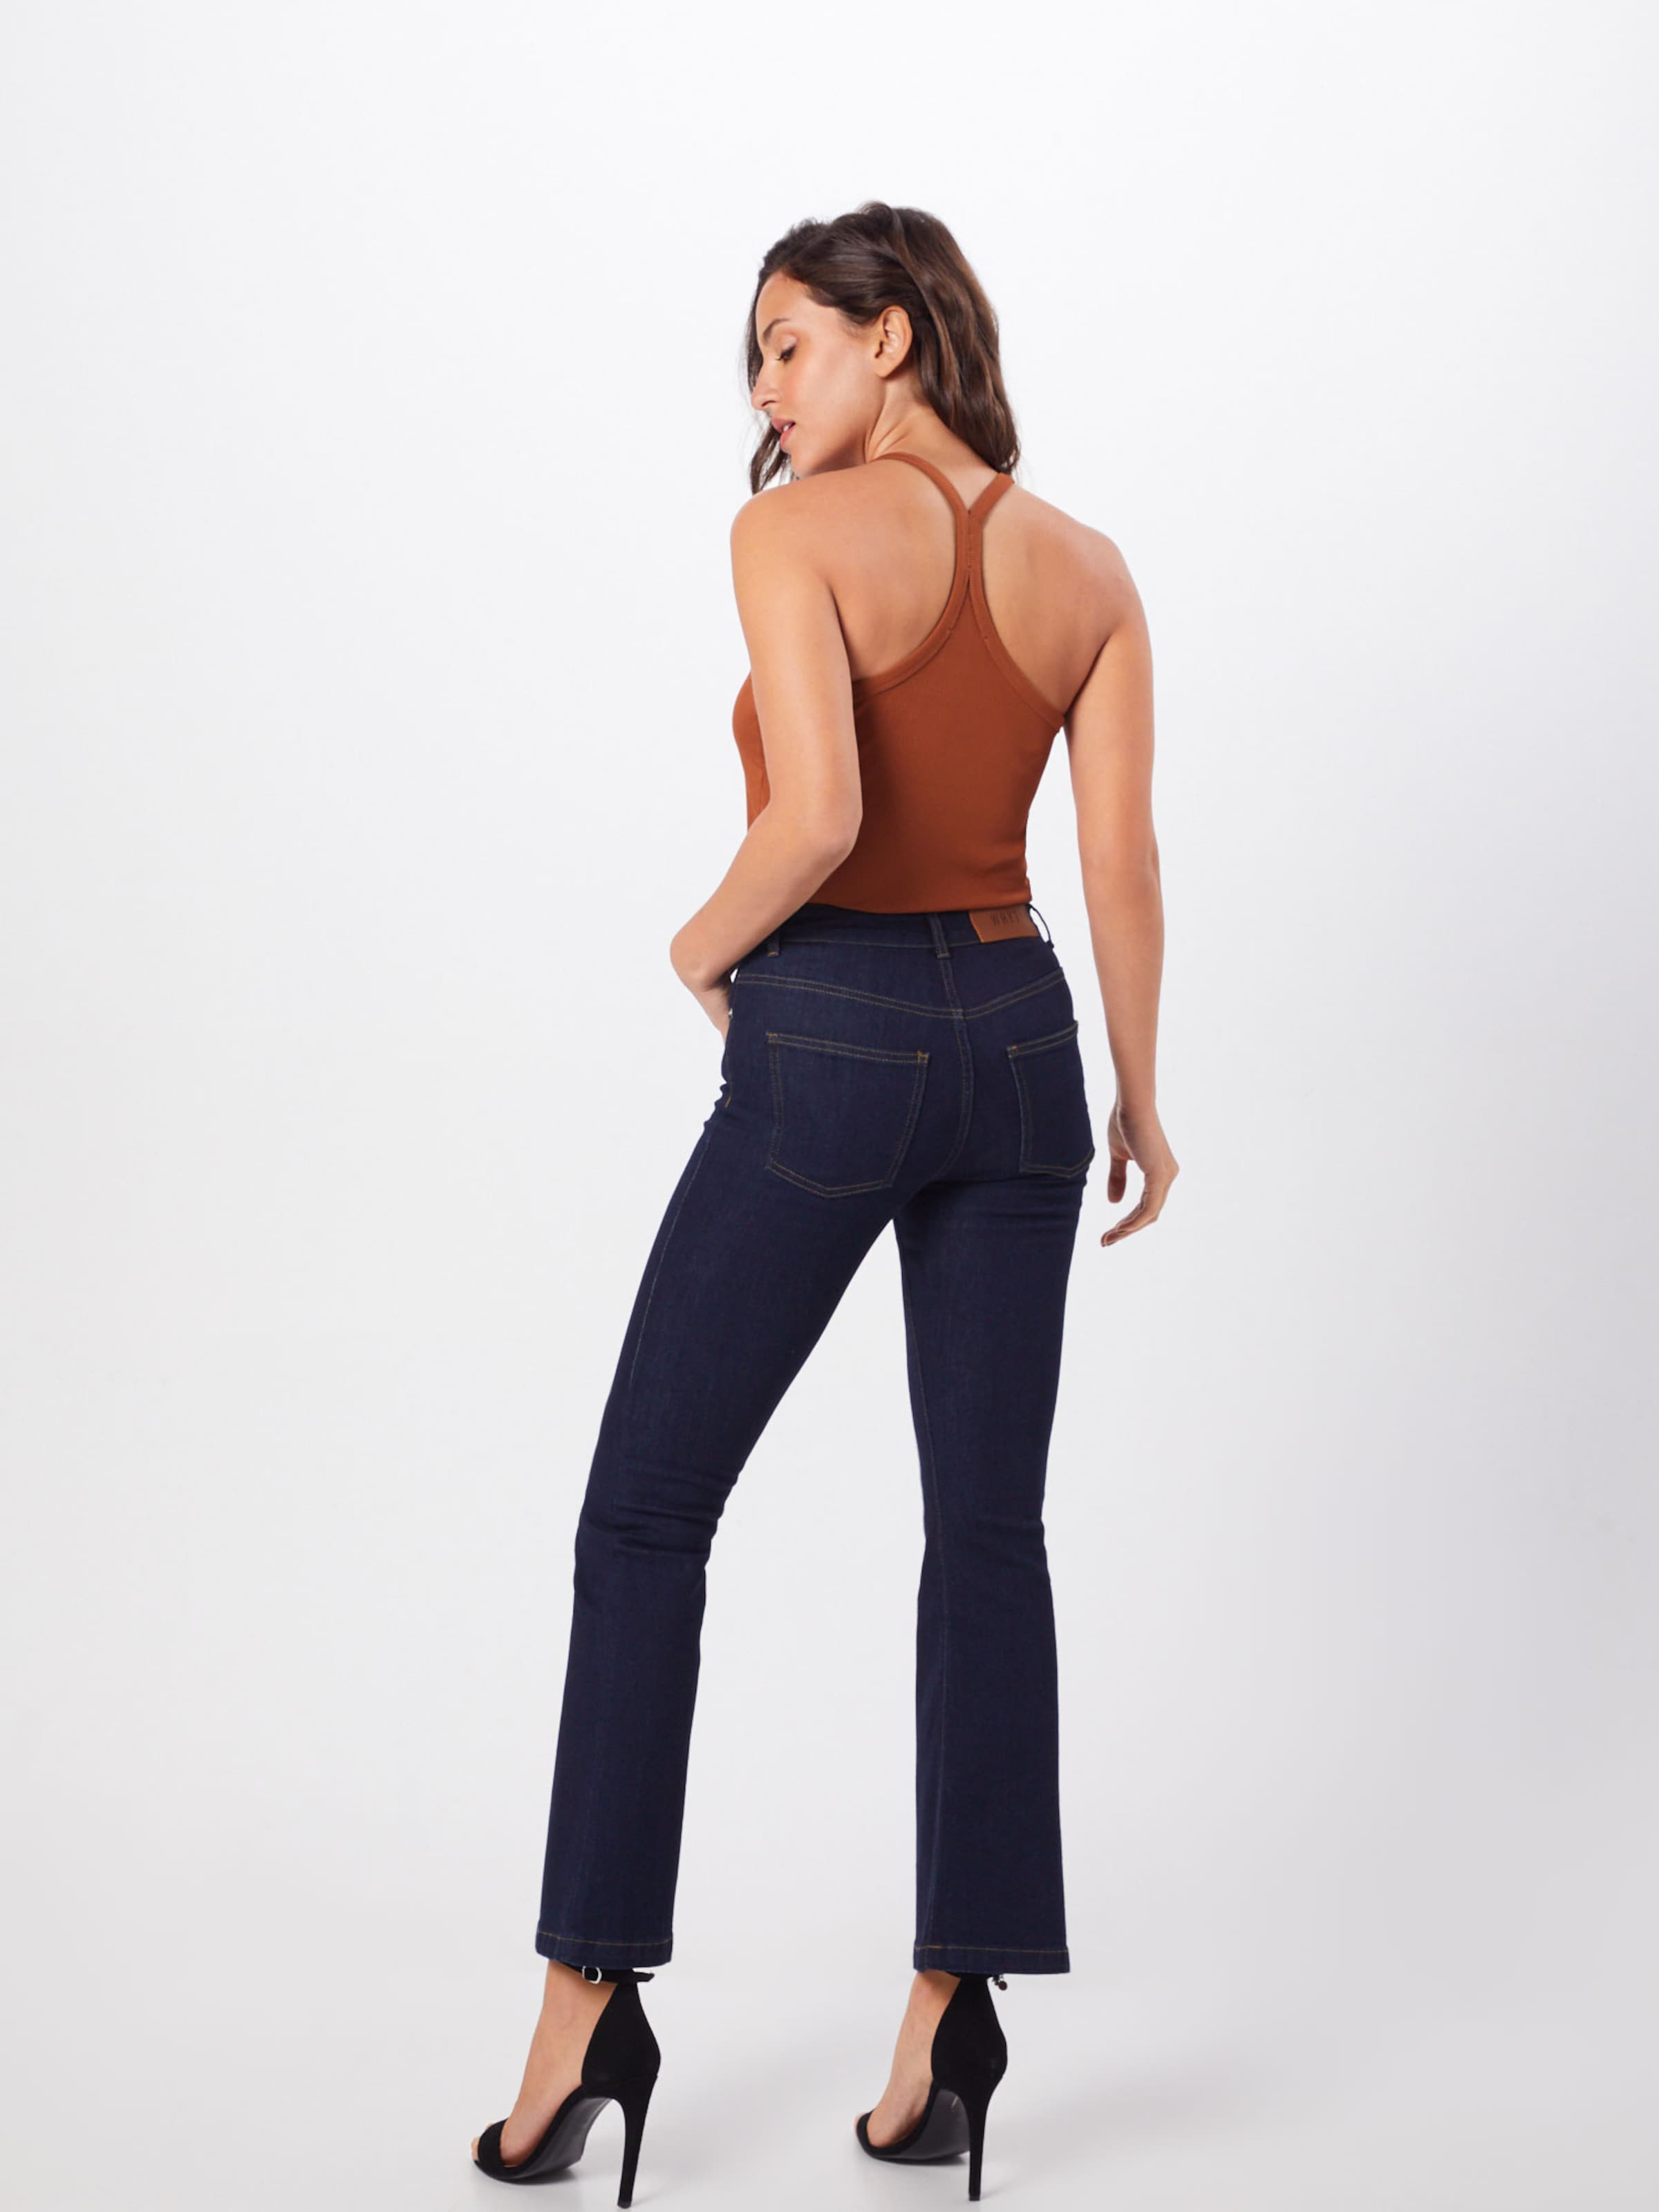 Why7 'nw Flare' Denim Jeans Blue In N8Pkwn0ZOX